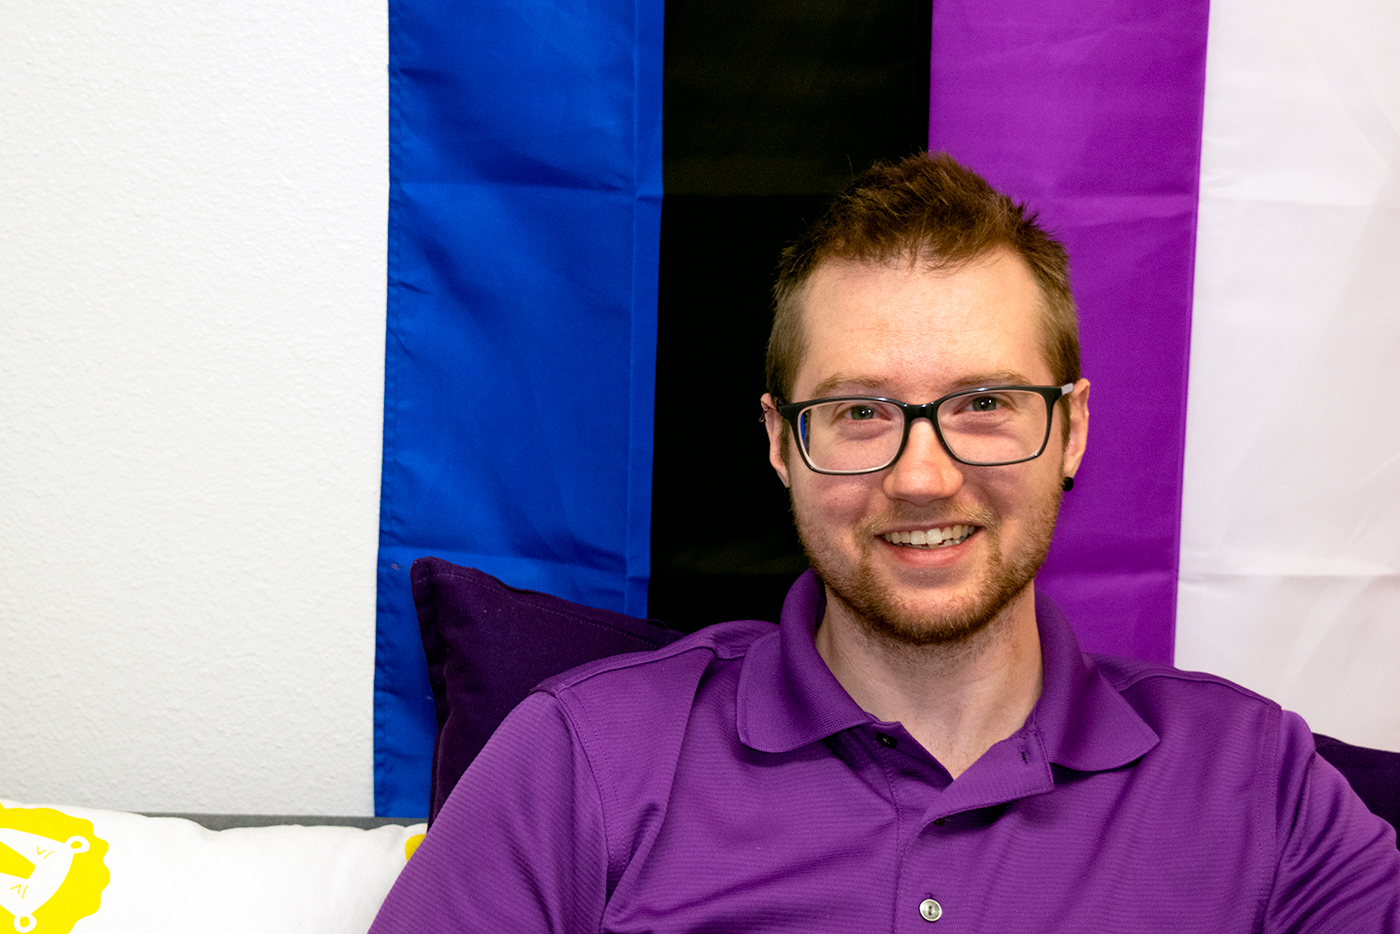 With Genderbands, Ian Giles helps trans and gender-expansive individuals locally and nationally through financial and community-based support.